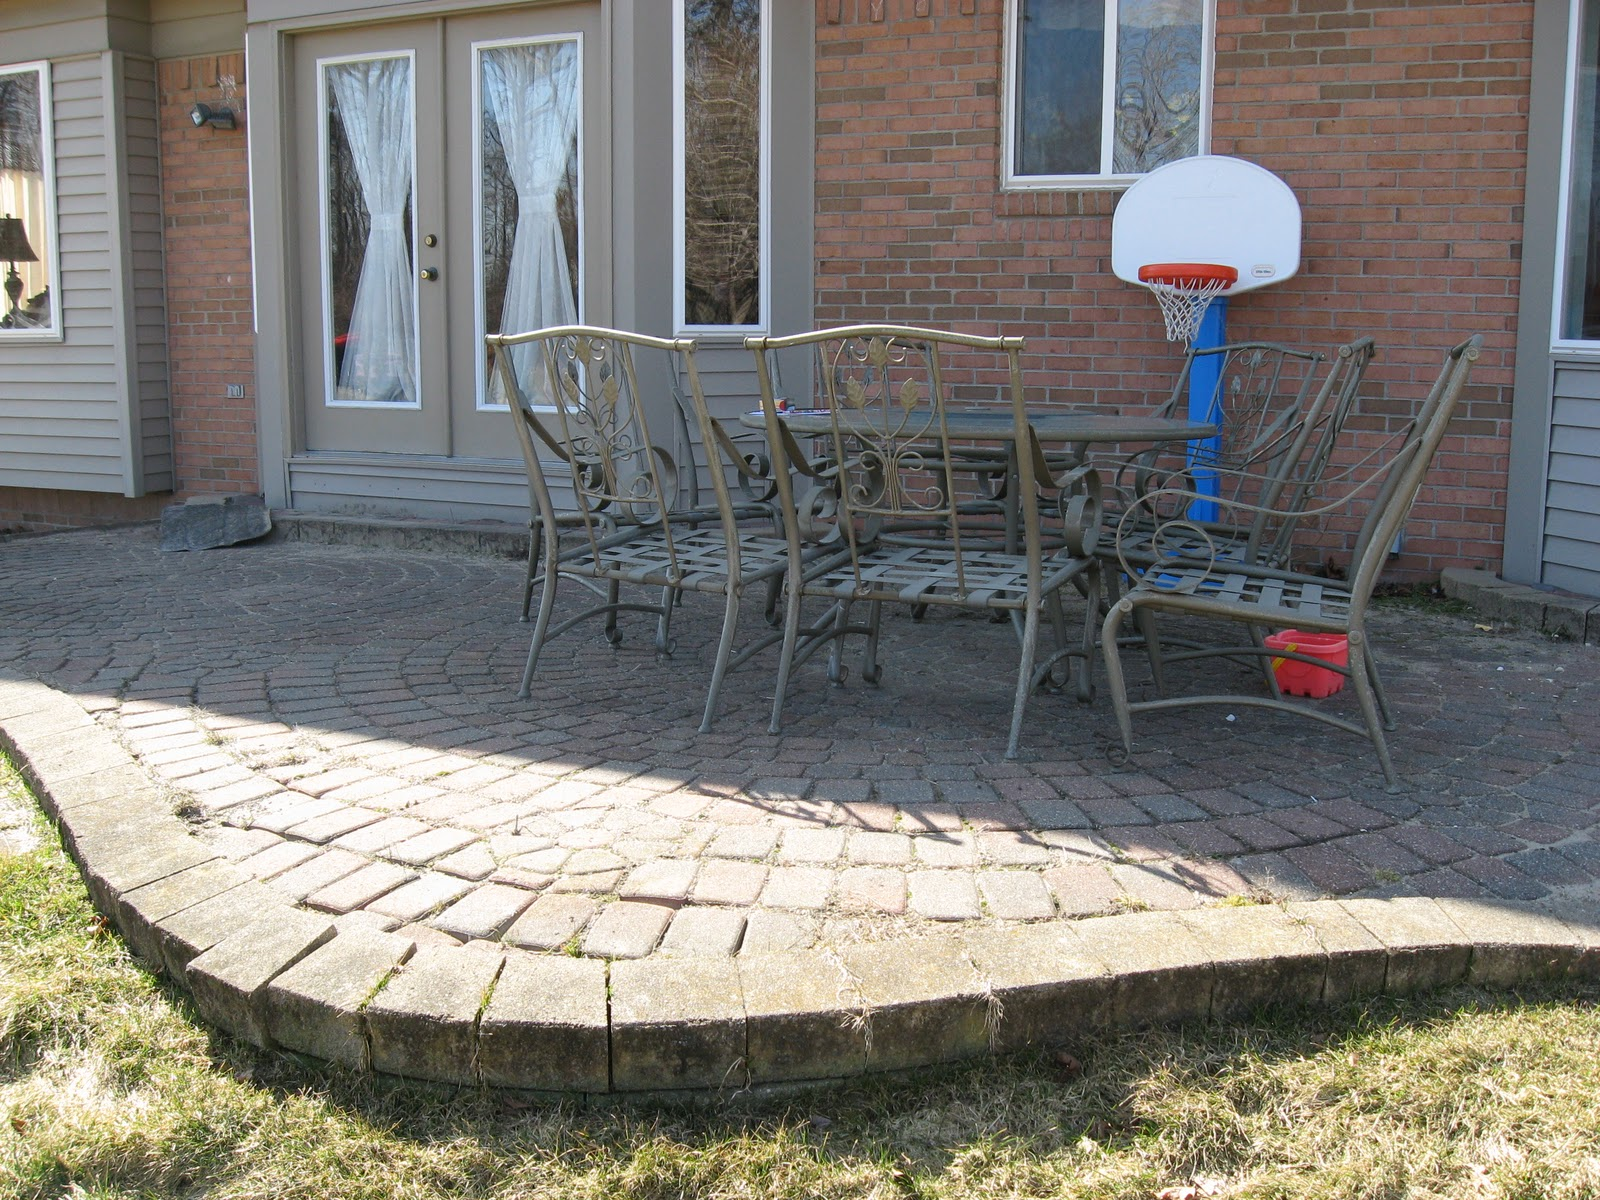 Brick Pavers,canton,plymouth,northville,ann Arbor,patio. Outdoor Furniture Pallet Plans. Patio Table Umbrella Replacement. Outdoor Furniture Rental Sydney. Outdoor Furniture Kmart Martha Stewart. Patio Furniture In Quebec. Patio Sets For Sale In Calgary. Three Seat Patio Swing Cover. How To Build A Low Patio Deck